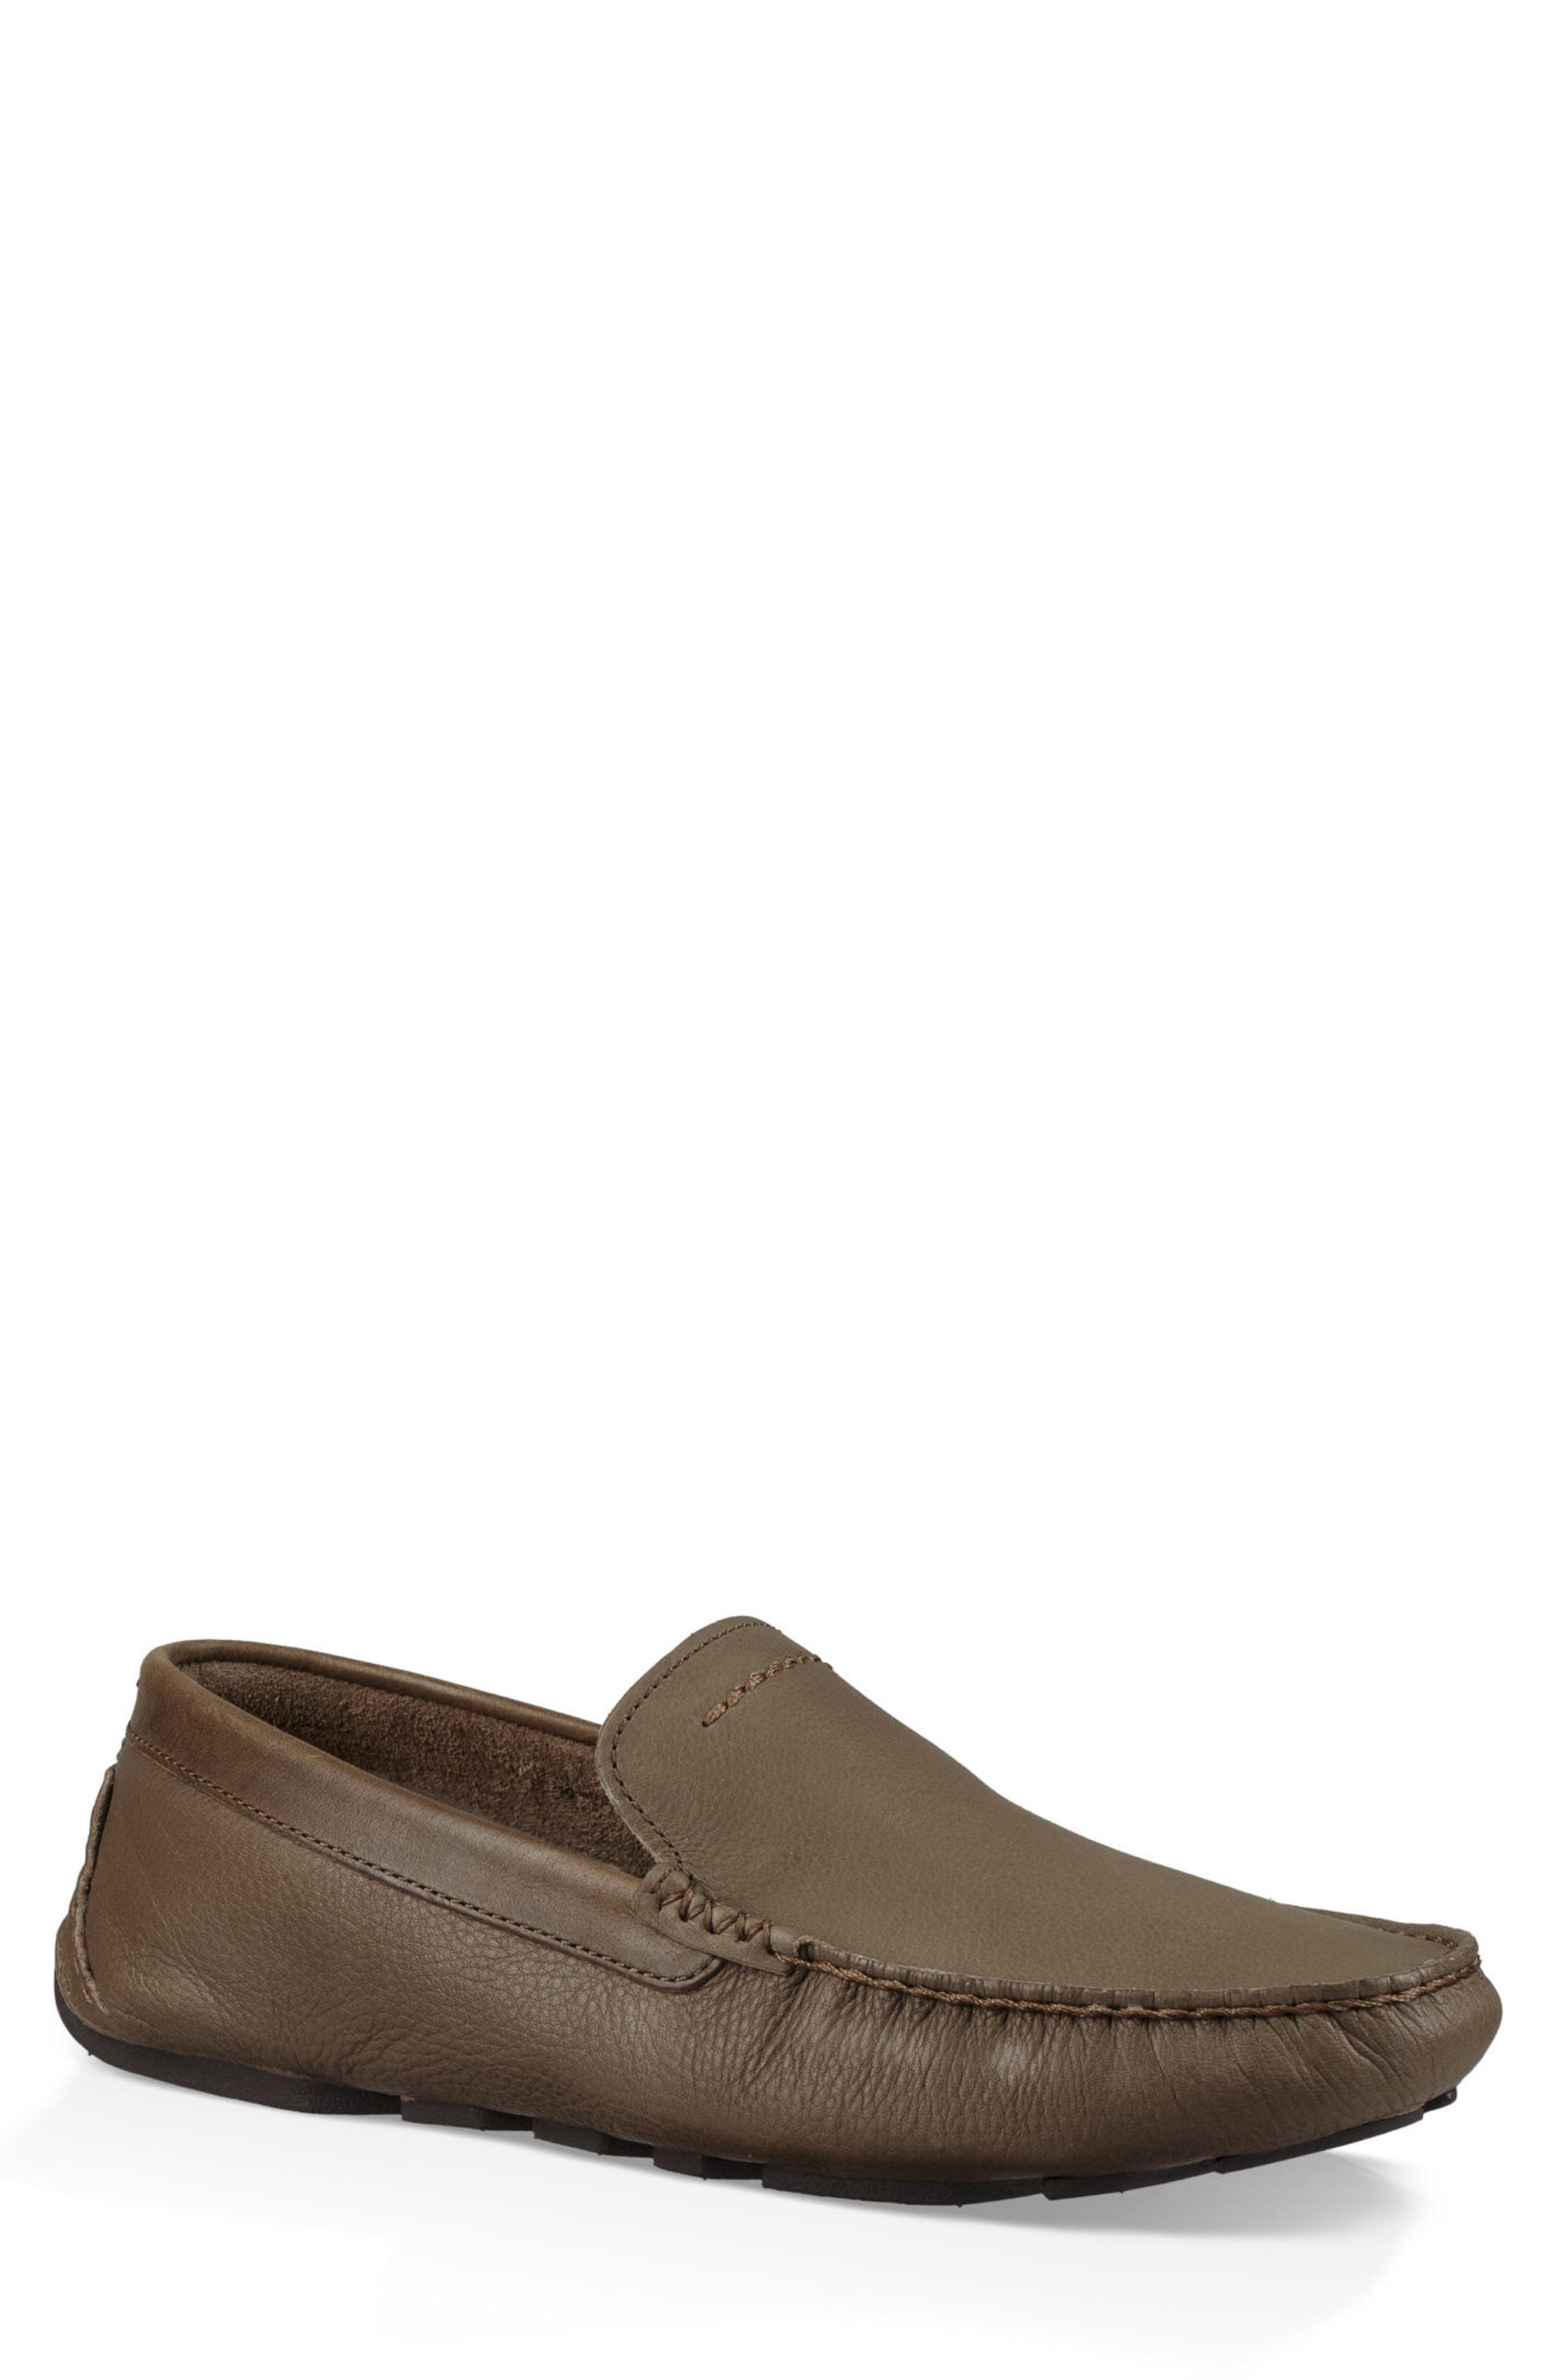 'Henrick' Driving Shoe,                         Main,                         color, TAUPE